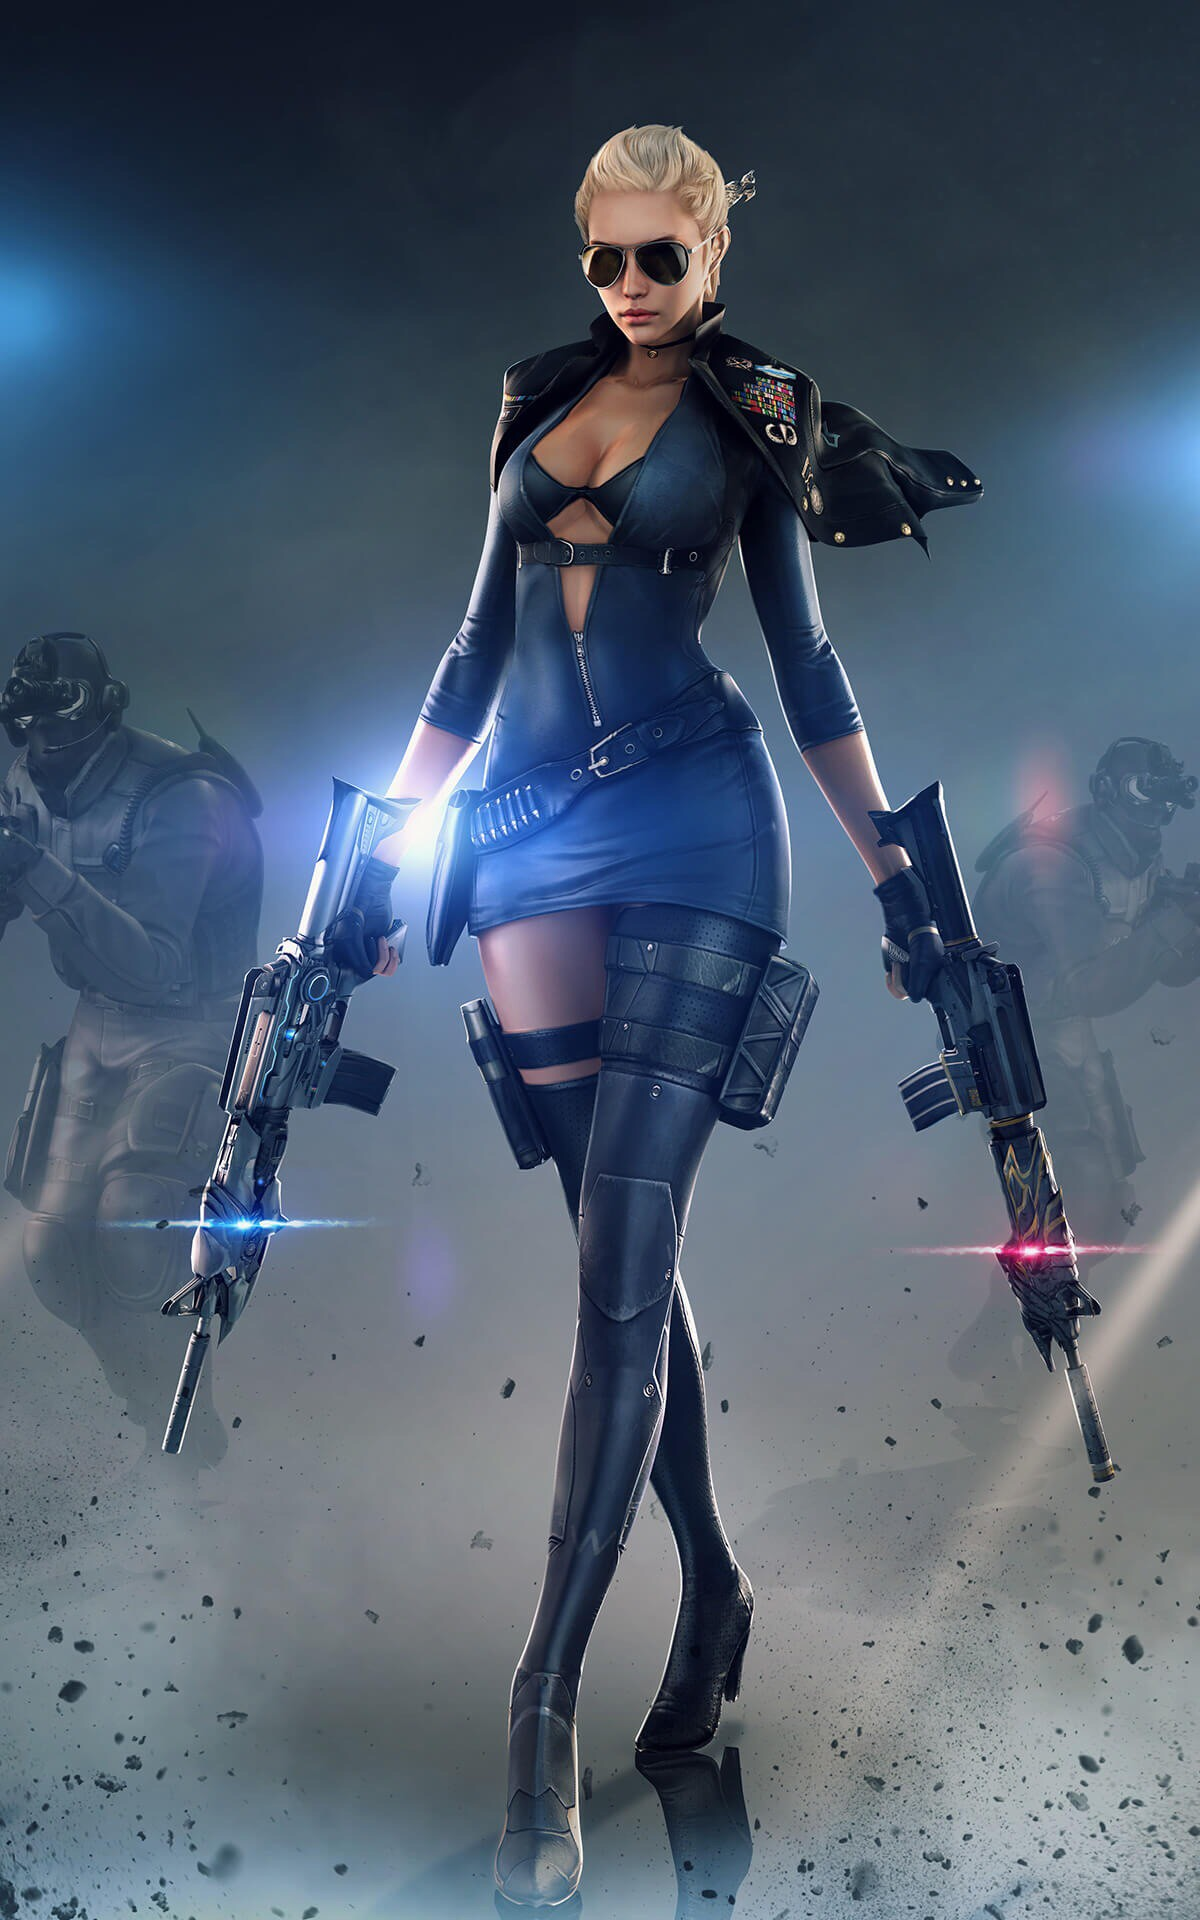 Girl With Guns Hd Wallpapers Women With Sunglasses Women Crossfire Pc Gaming Gun